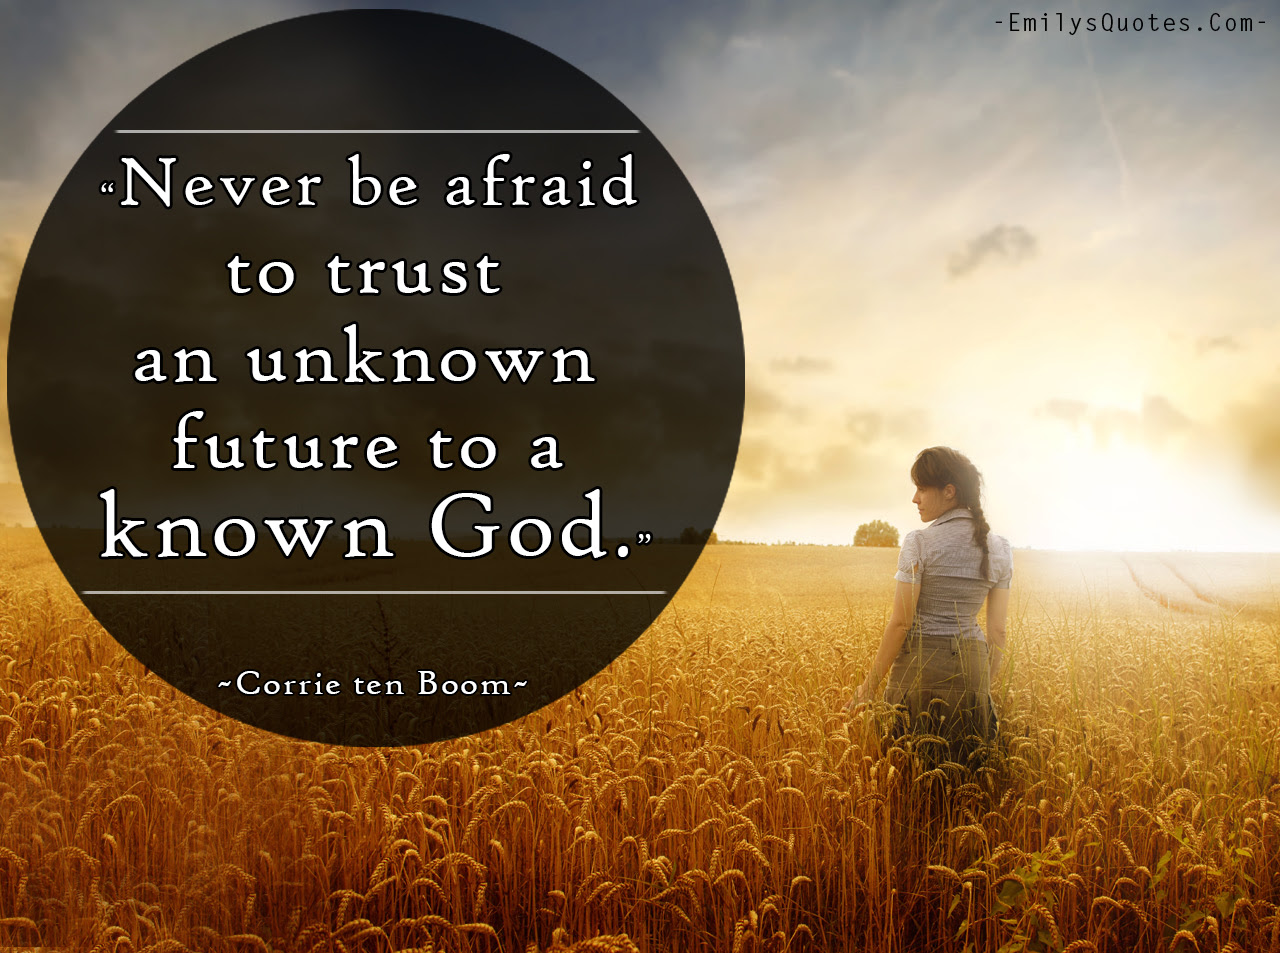 Never be afraid to trust an unknown future to a known God | Popular inspirational quotes at ...